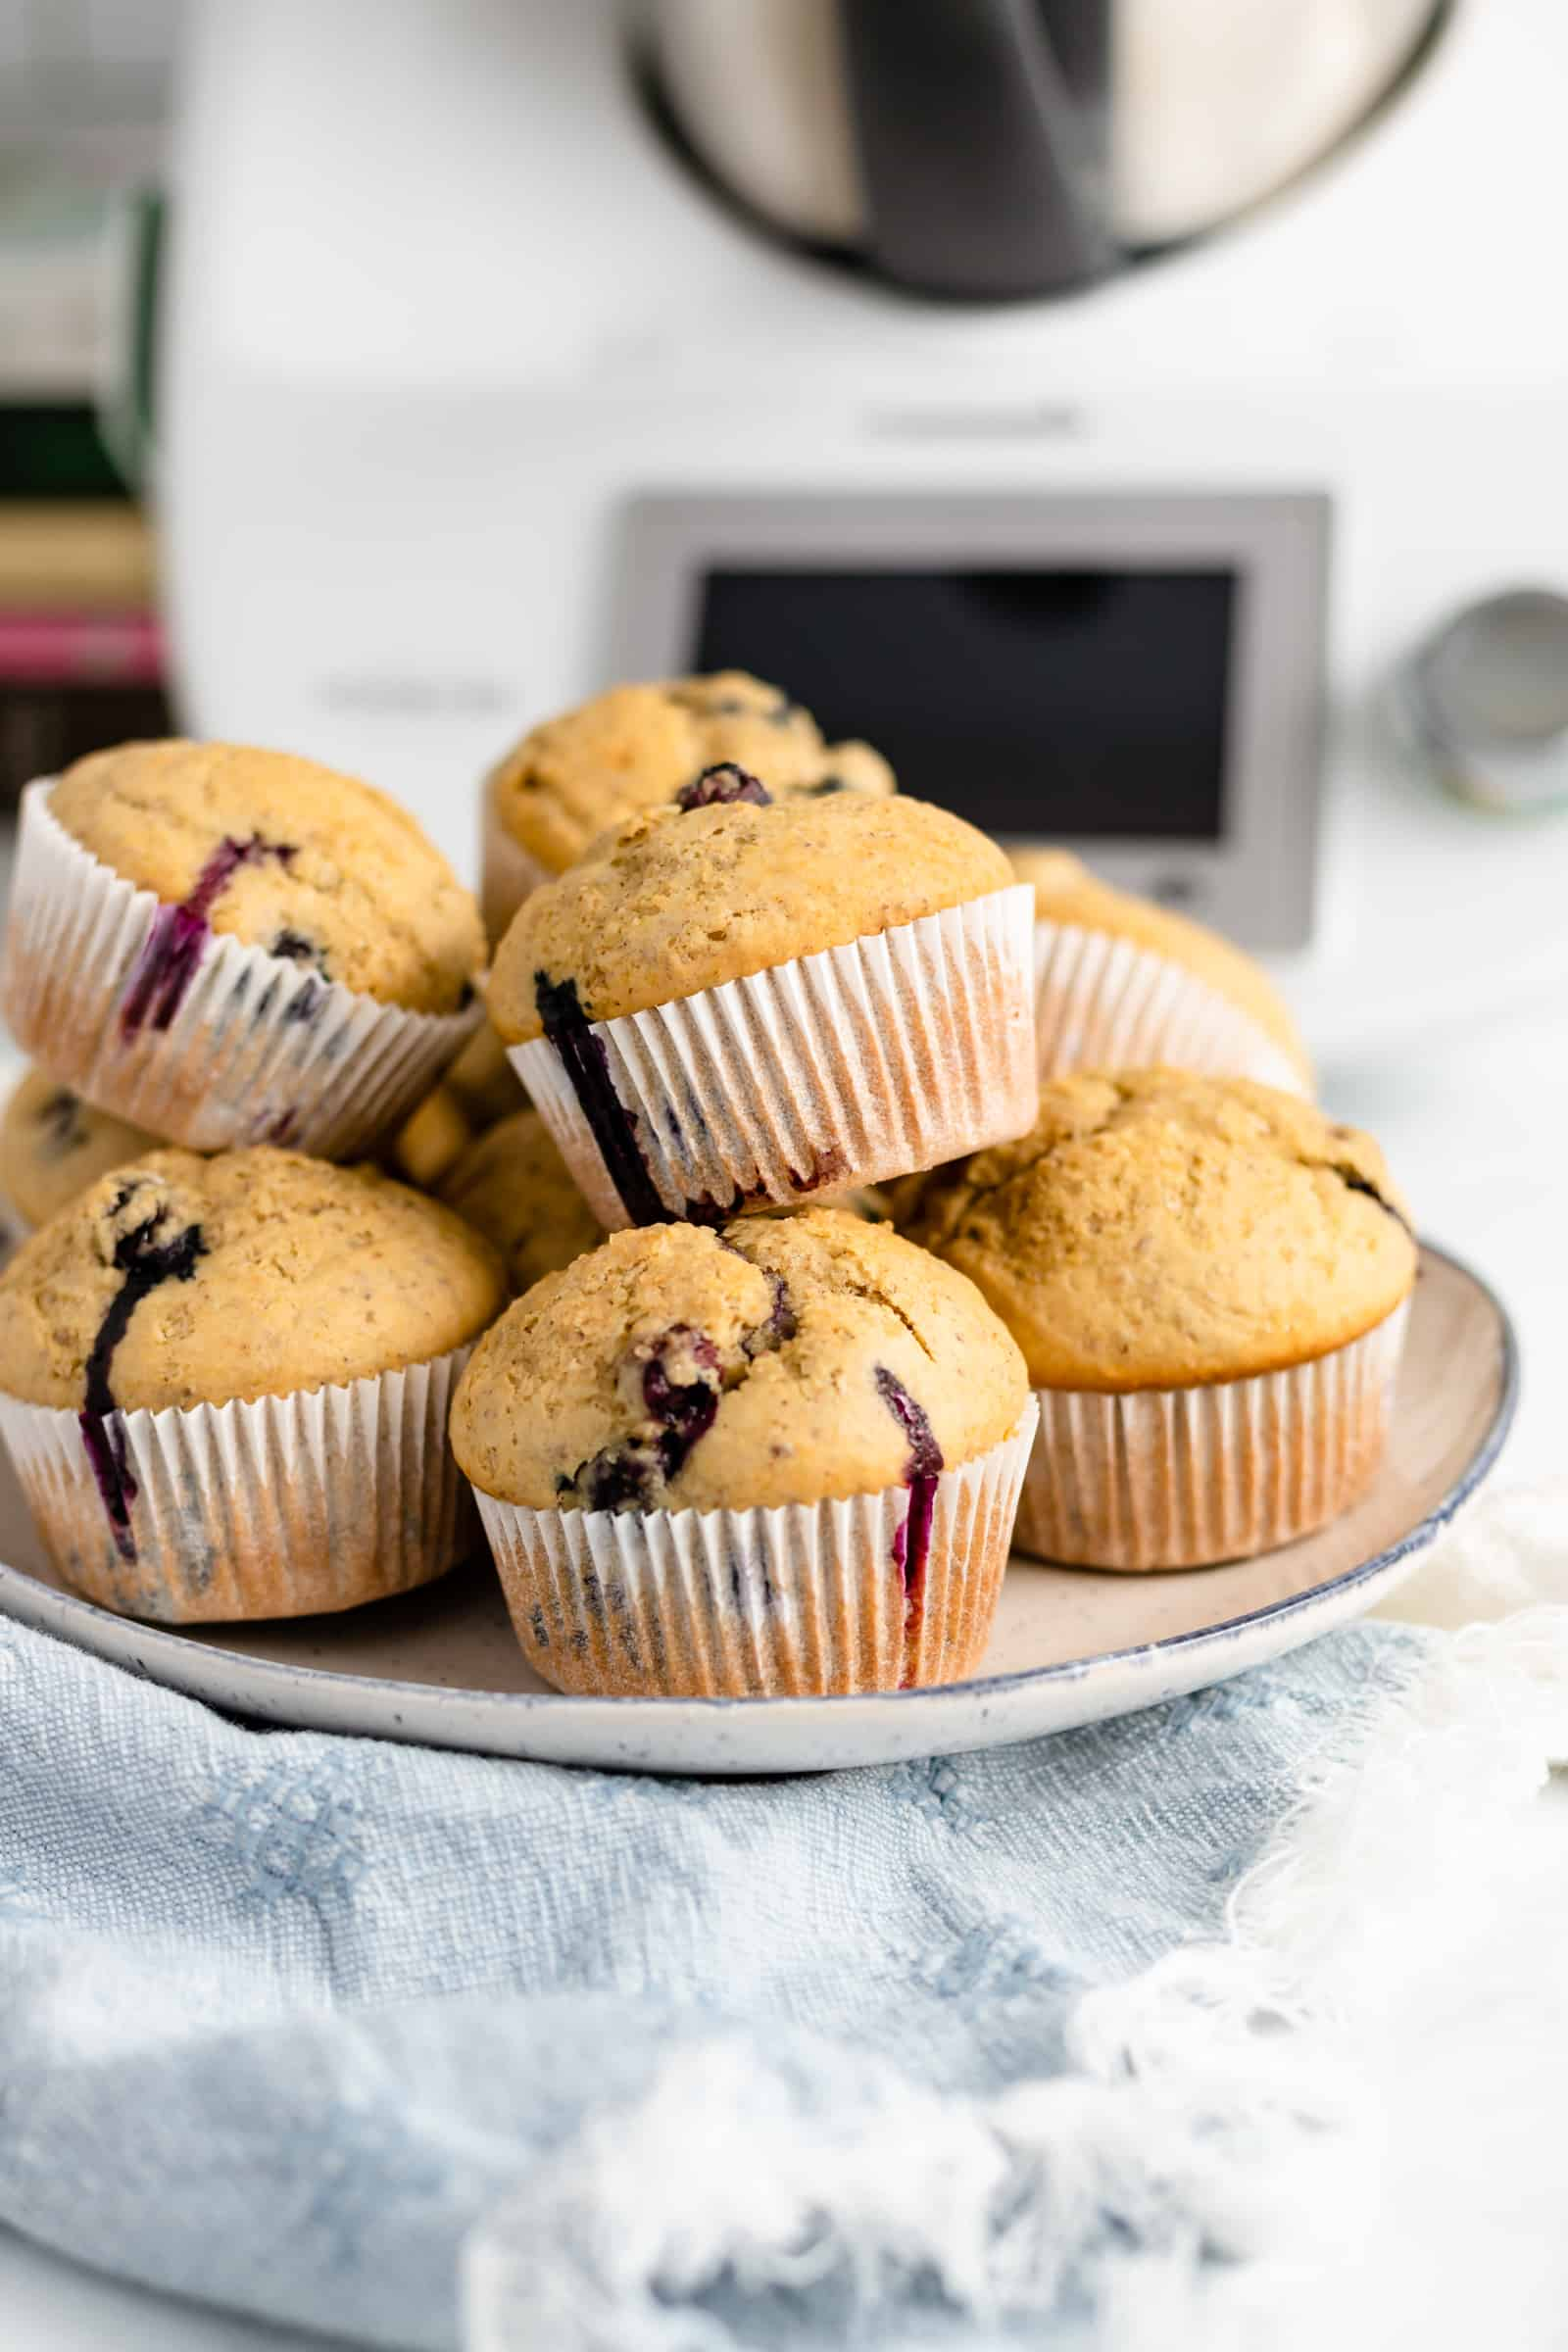 These Thermomix Blueberry Flax Muffins are moist, fluffy, and wholesome, with crispy tops. This will be your new favorite breakfast or snack!